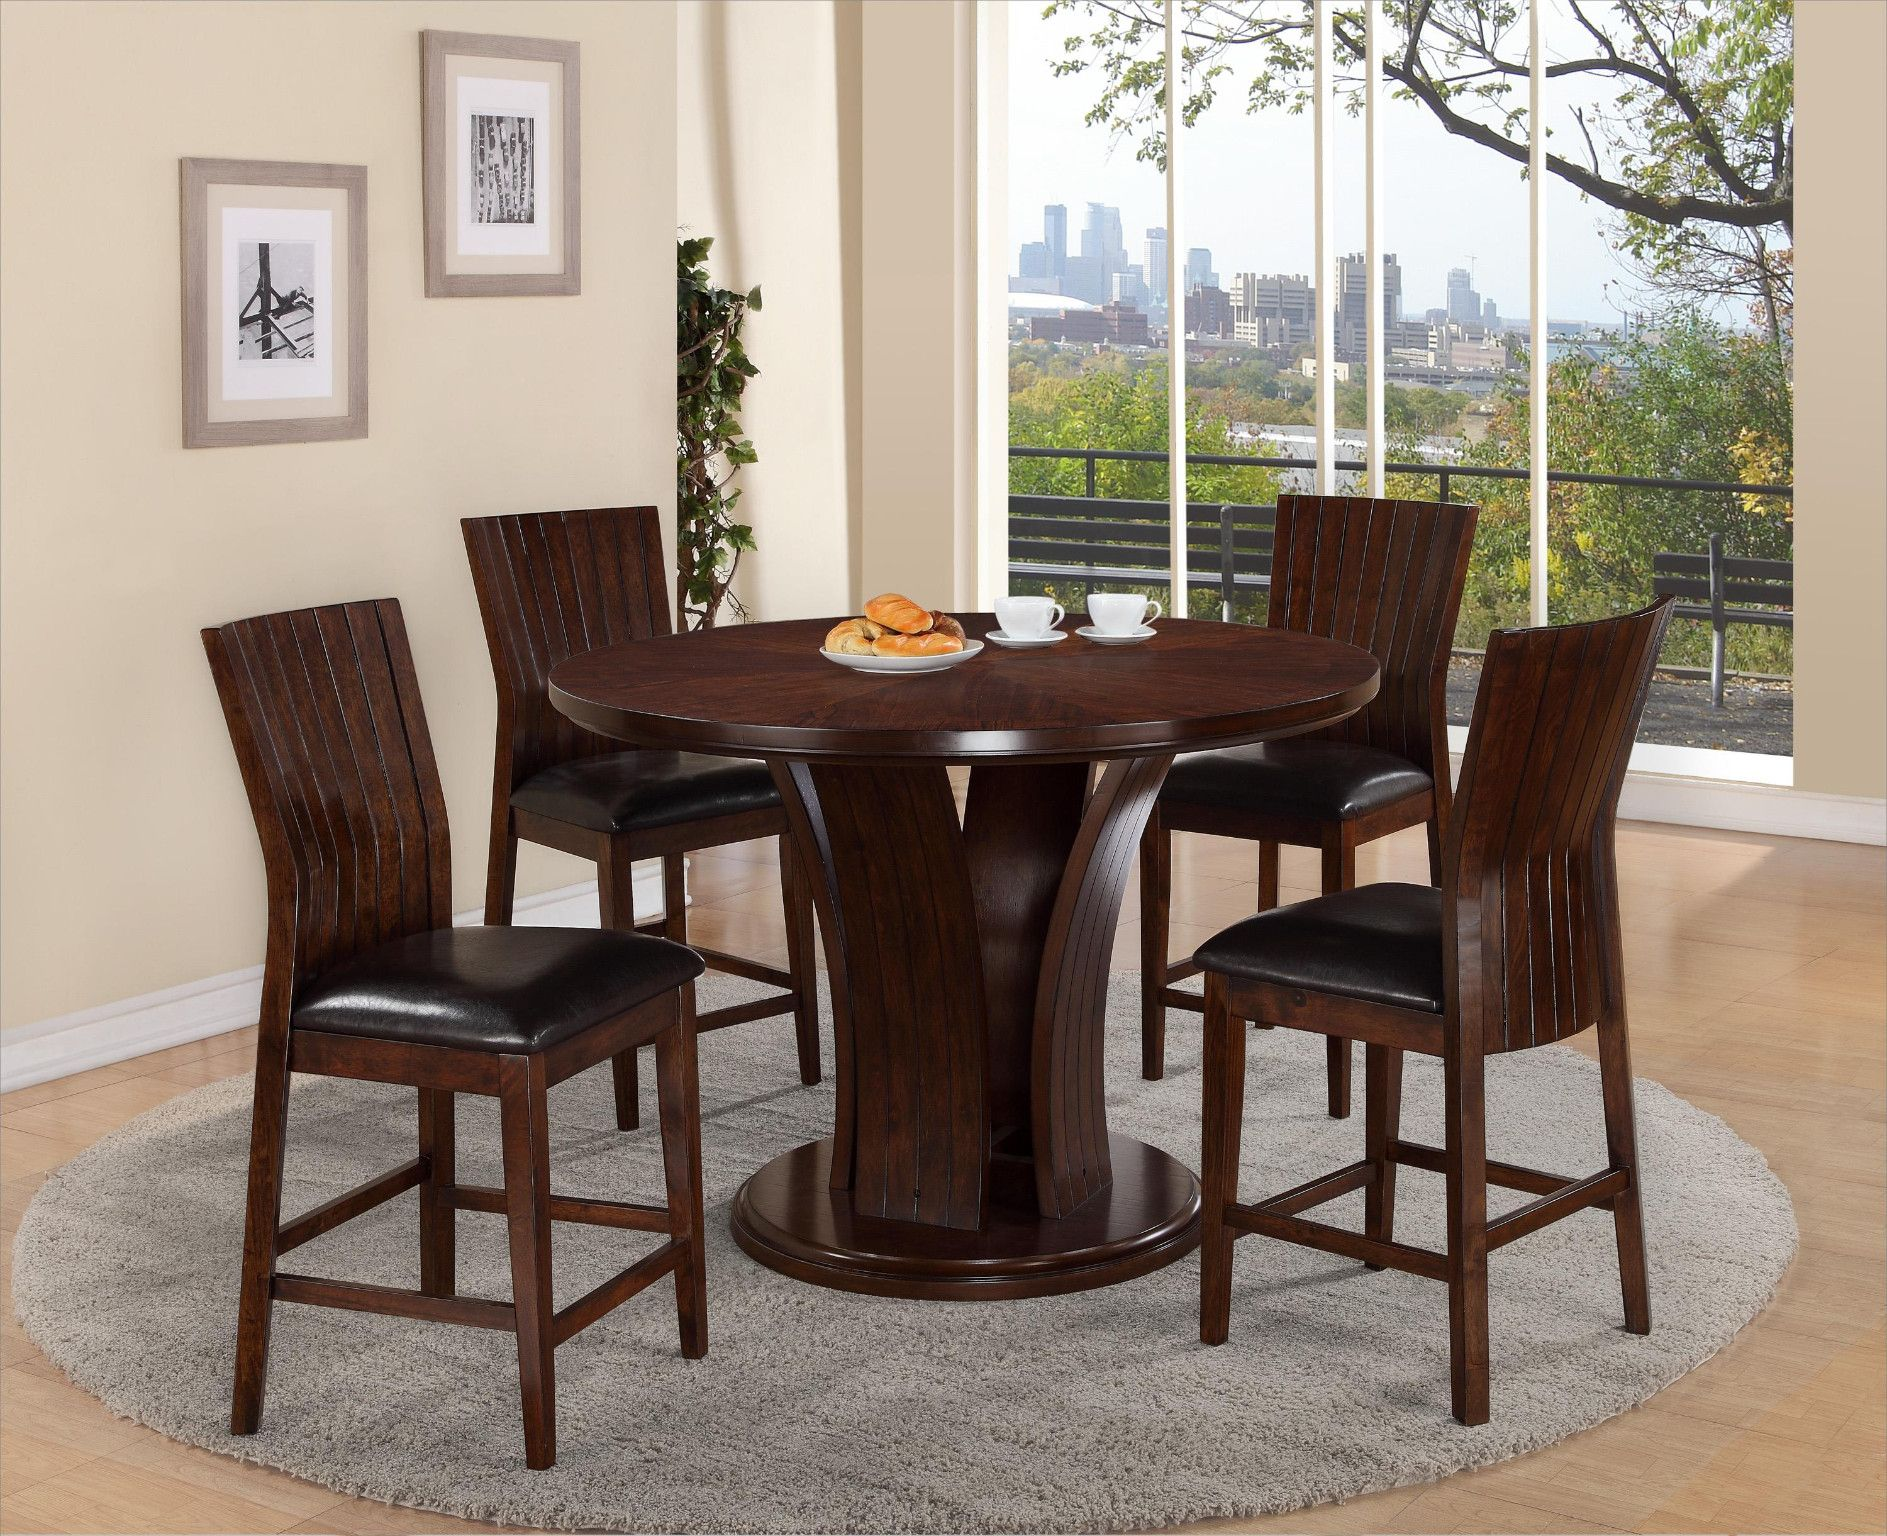 set and table furniture chairs counter standard with height chair shelves item mcgregor number products